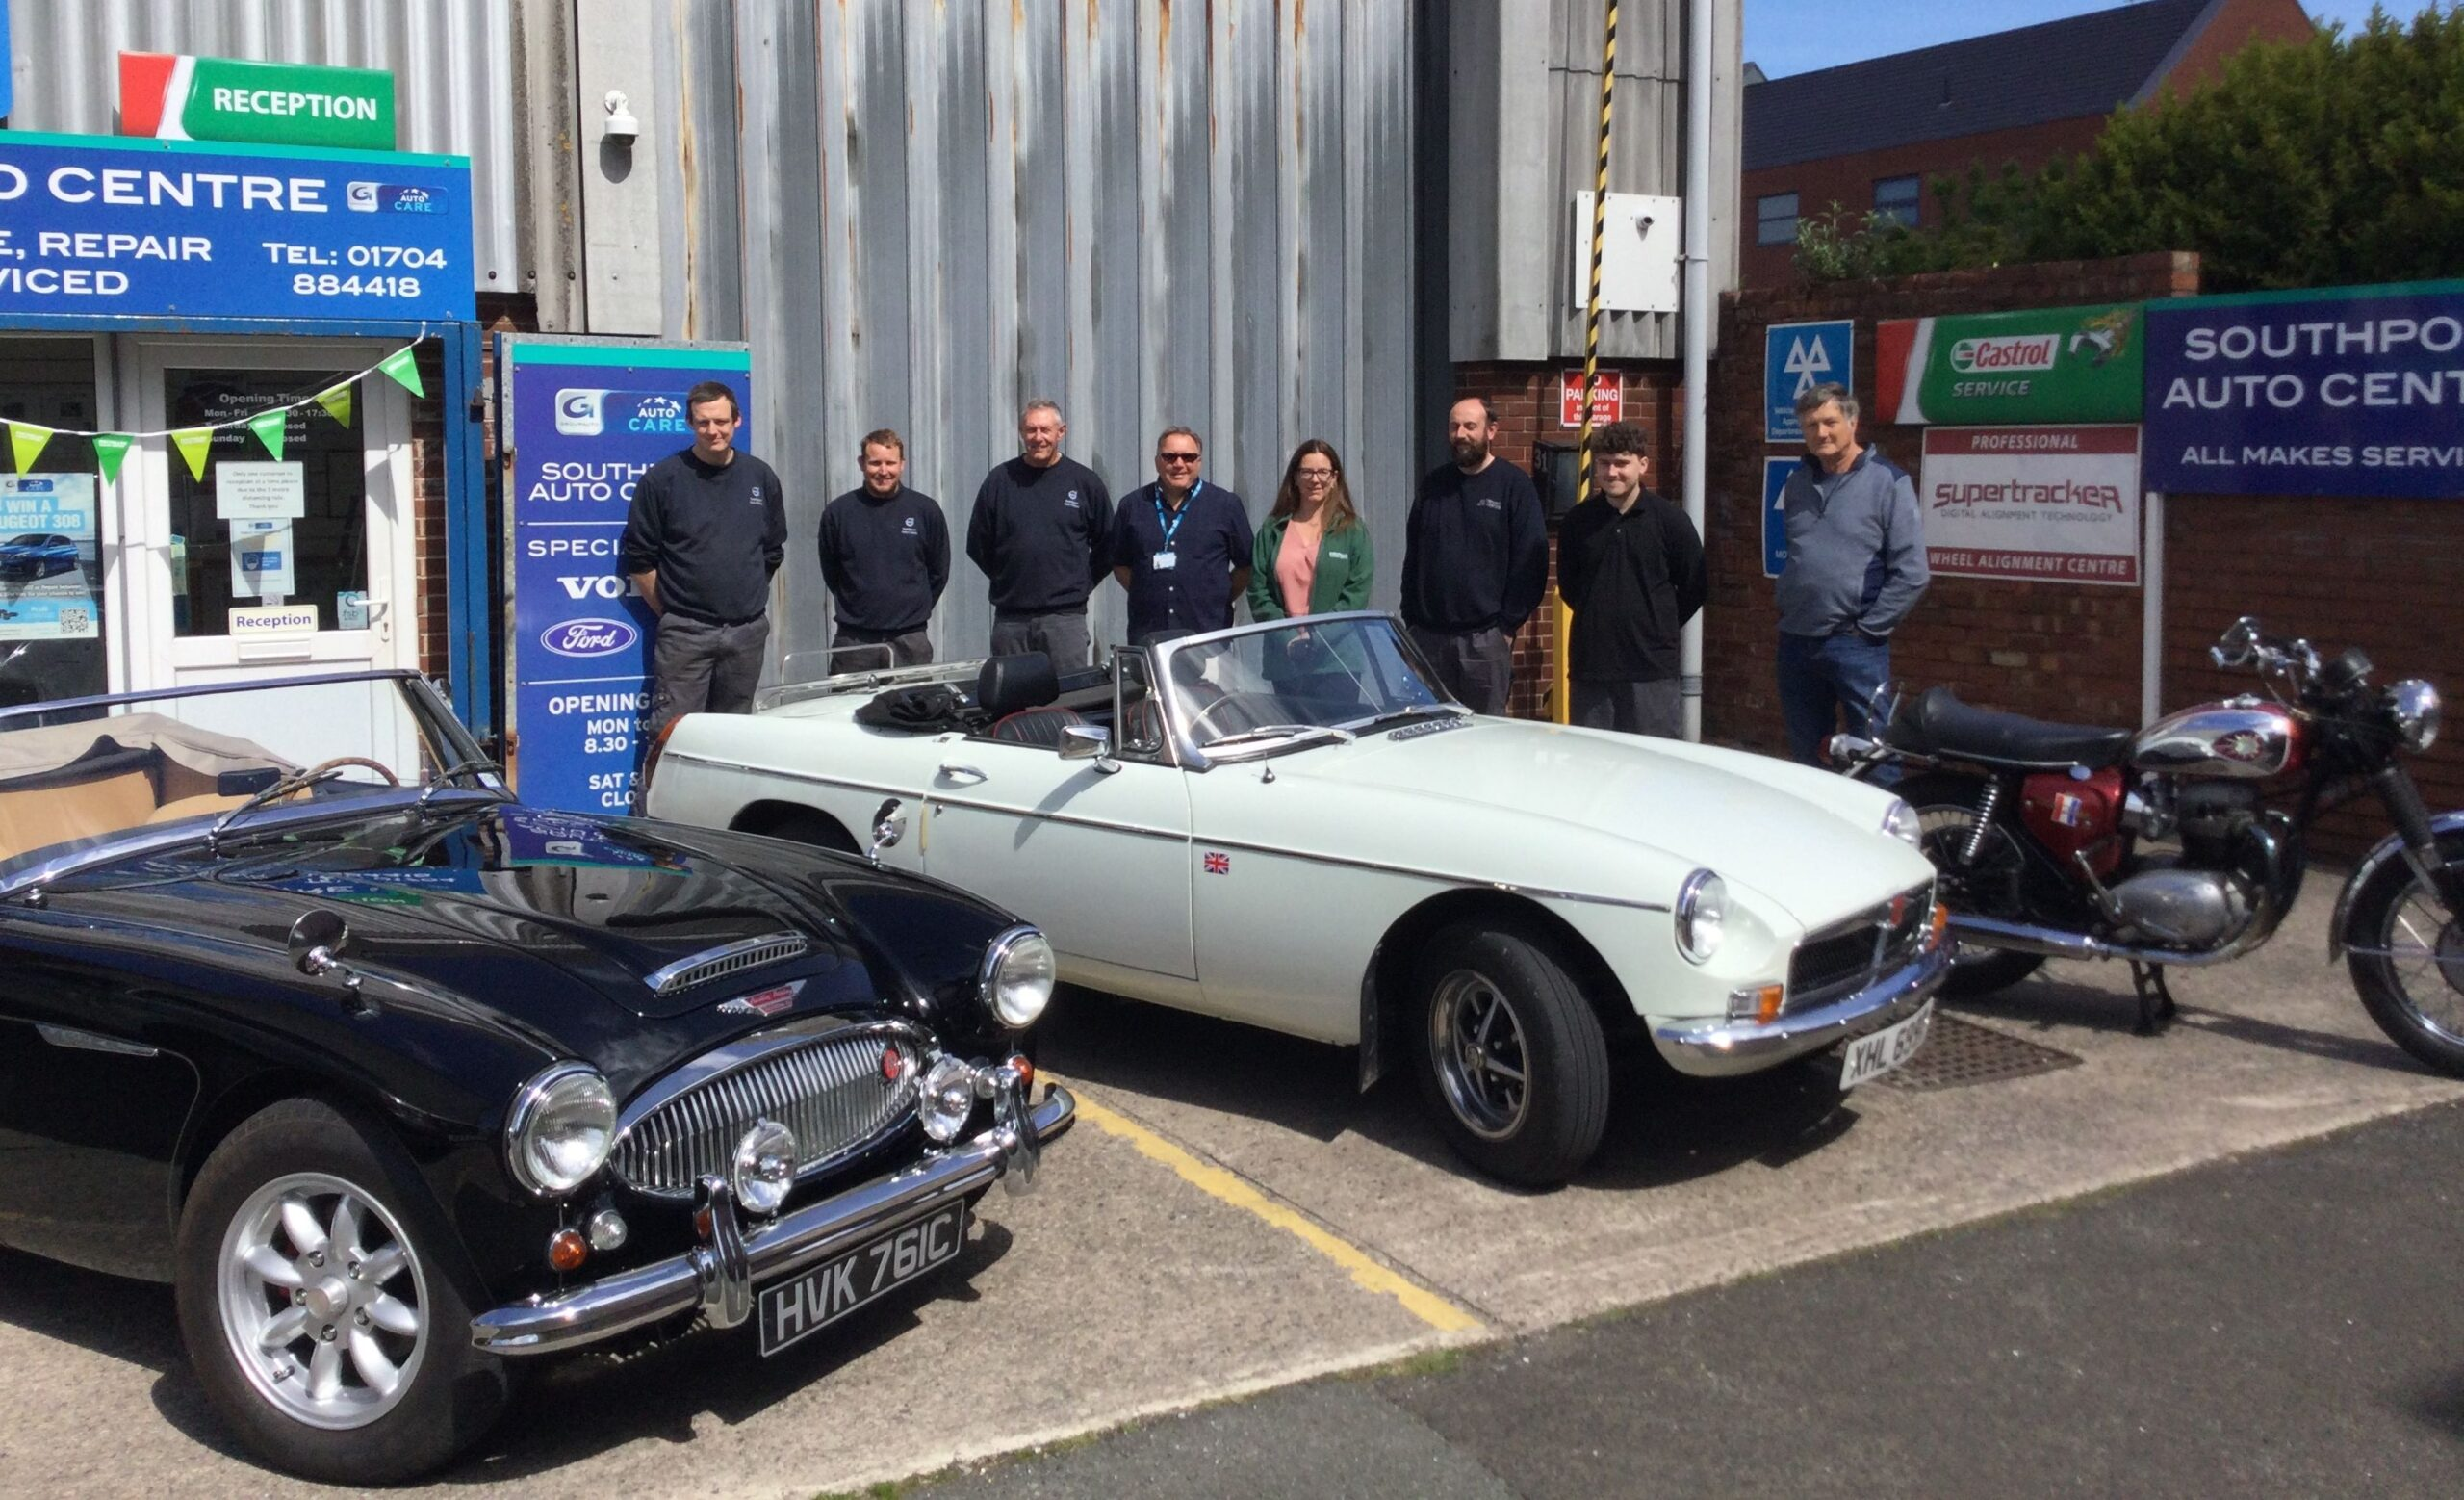 Southport Auto Centre is staging a classic car and motorcycle display to raise funds for Macmillan Cancer Support and the Southport Cancer Information and Support Centre